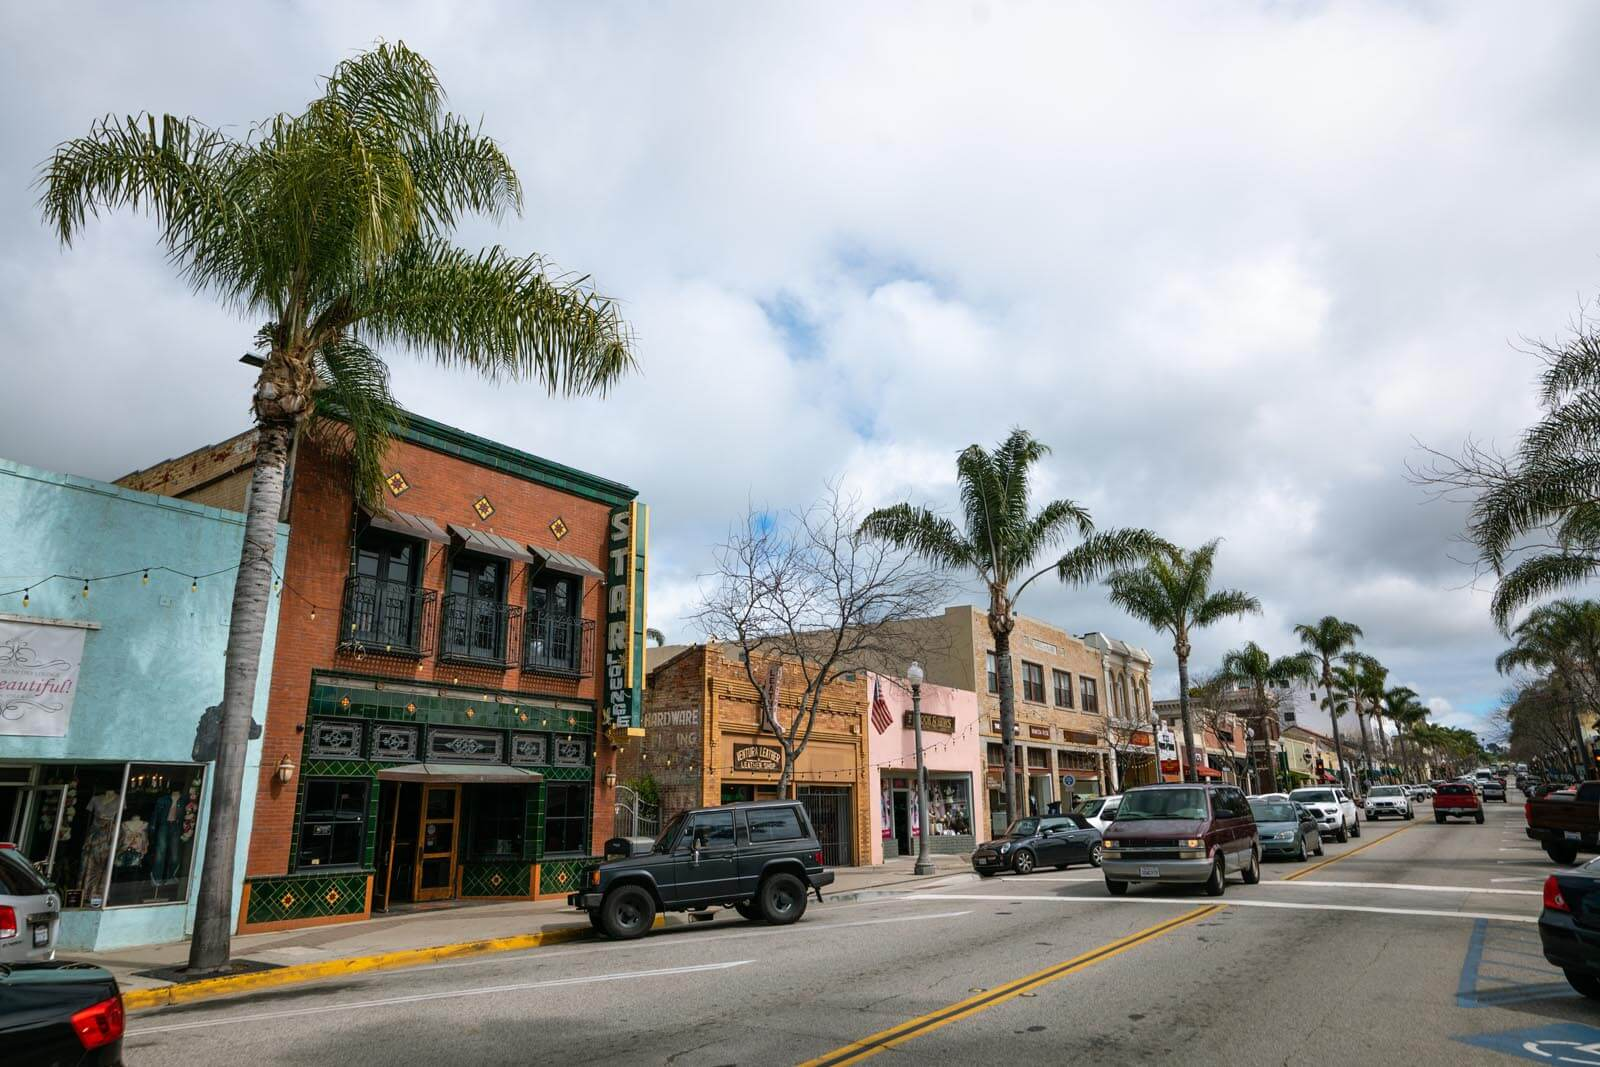 Main Street in downtown Ventura California